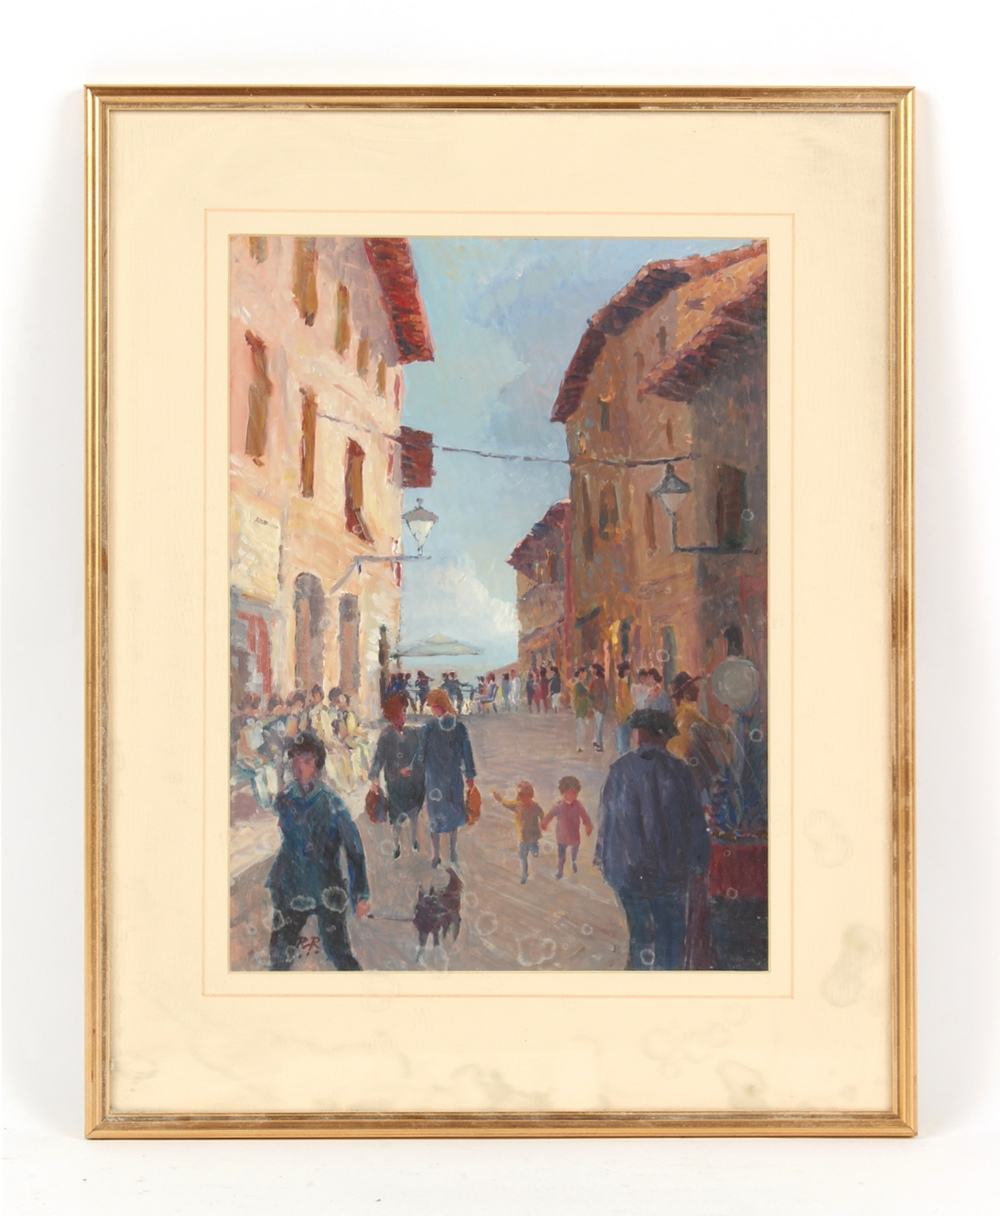 Property of a deceased estate - Roger Rigby (1922-2019) - 'PASSEGGIO IN CASOLE D'ELSA II' - oil on